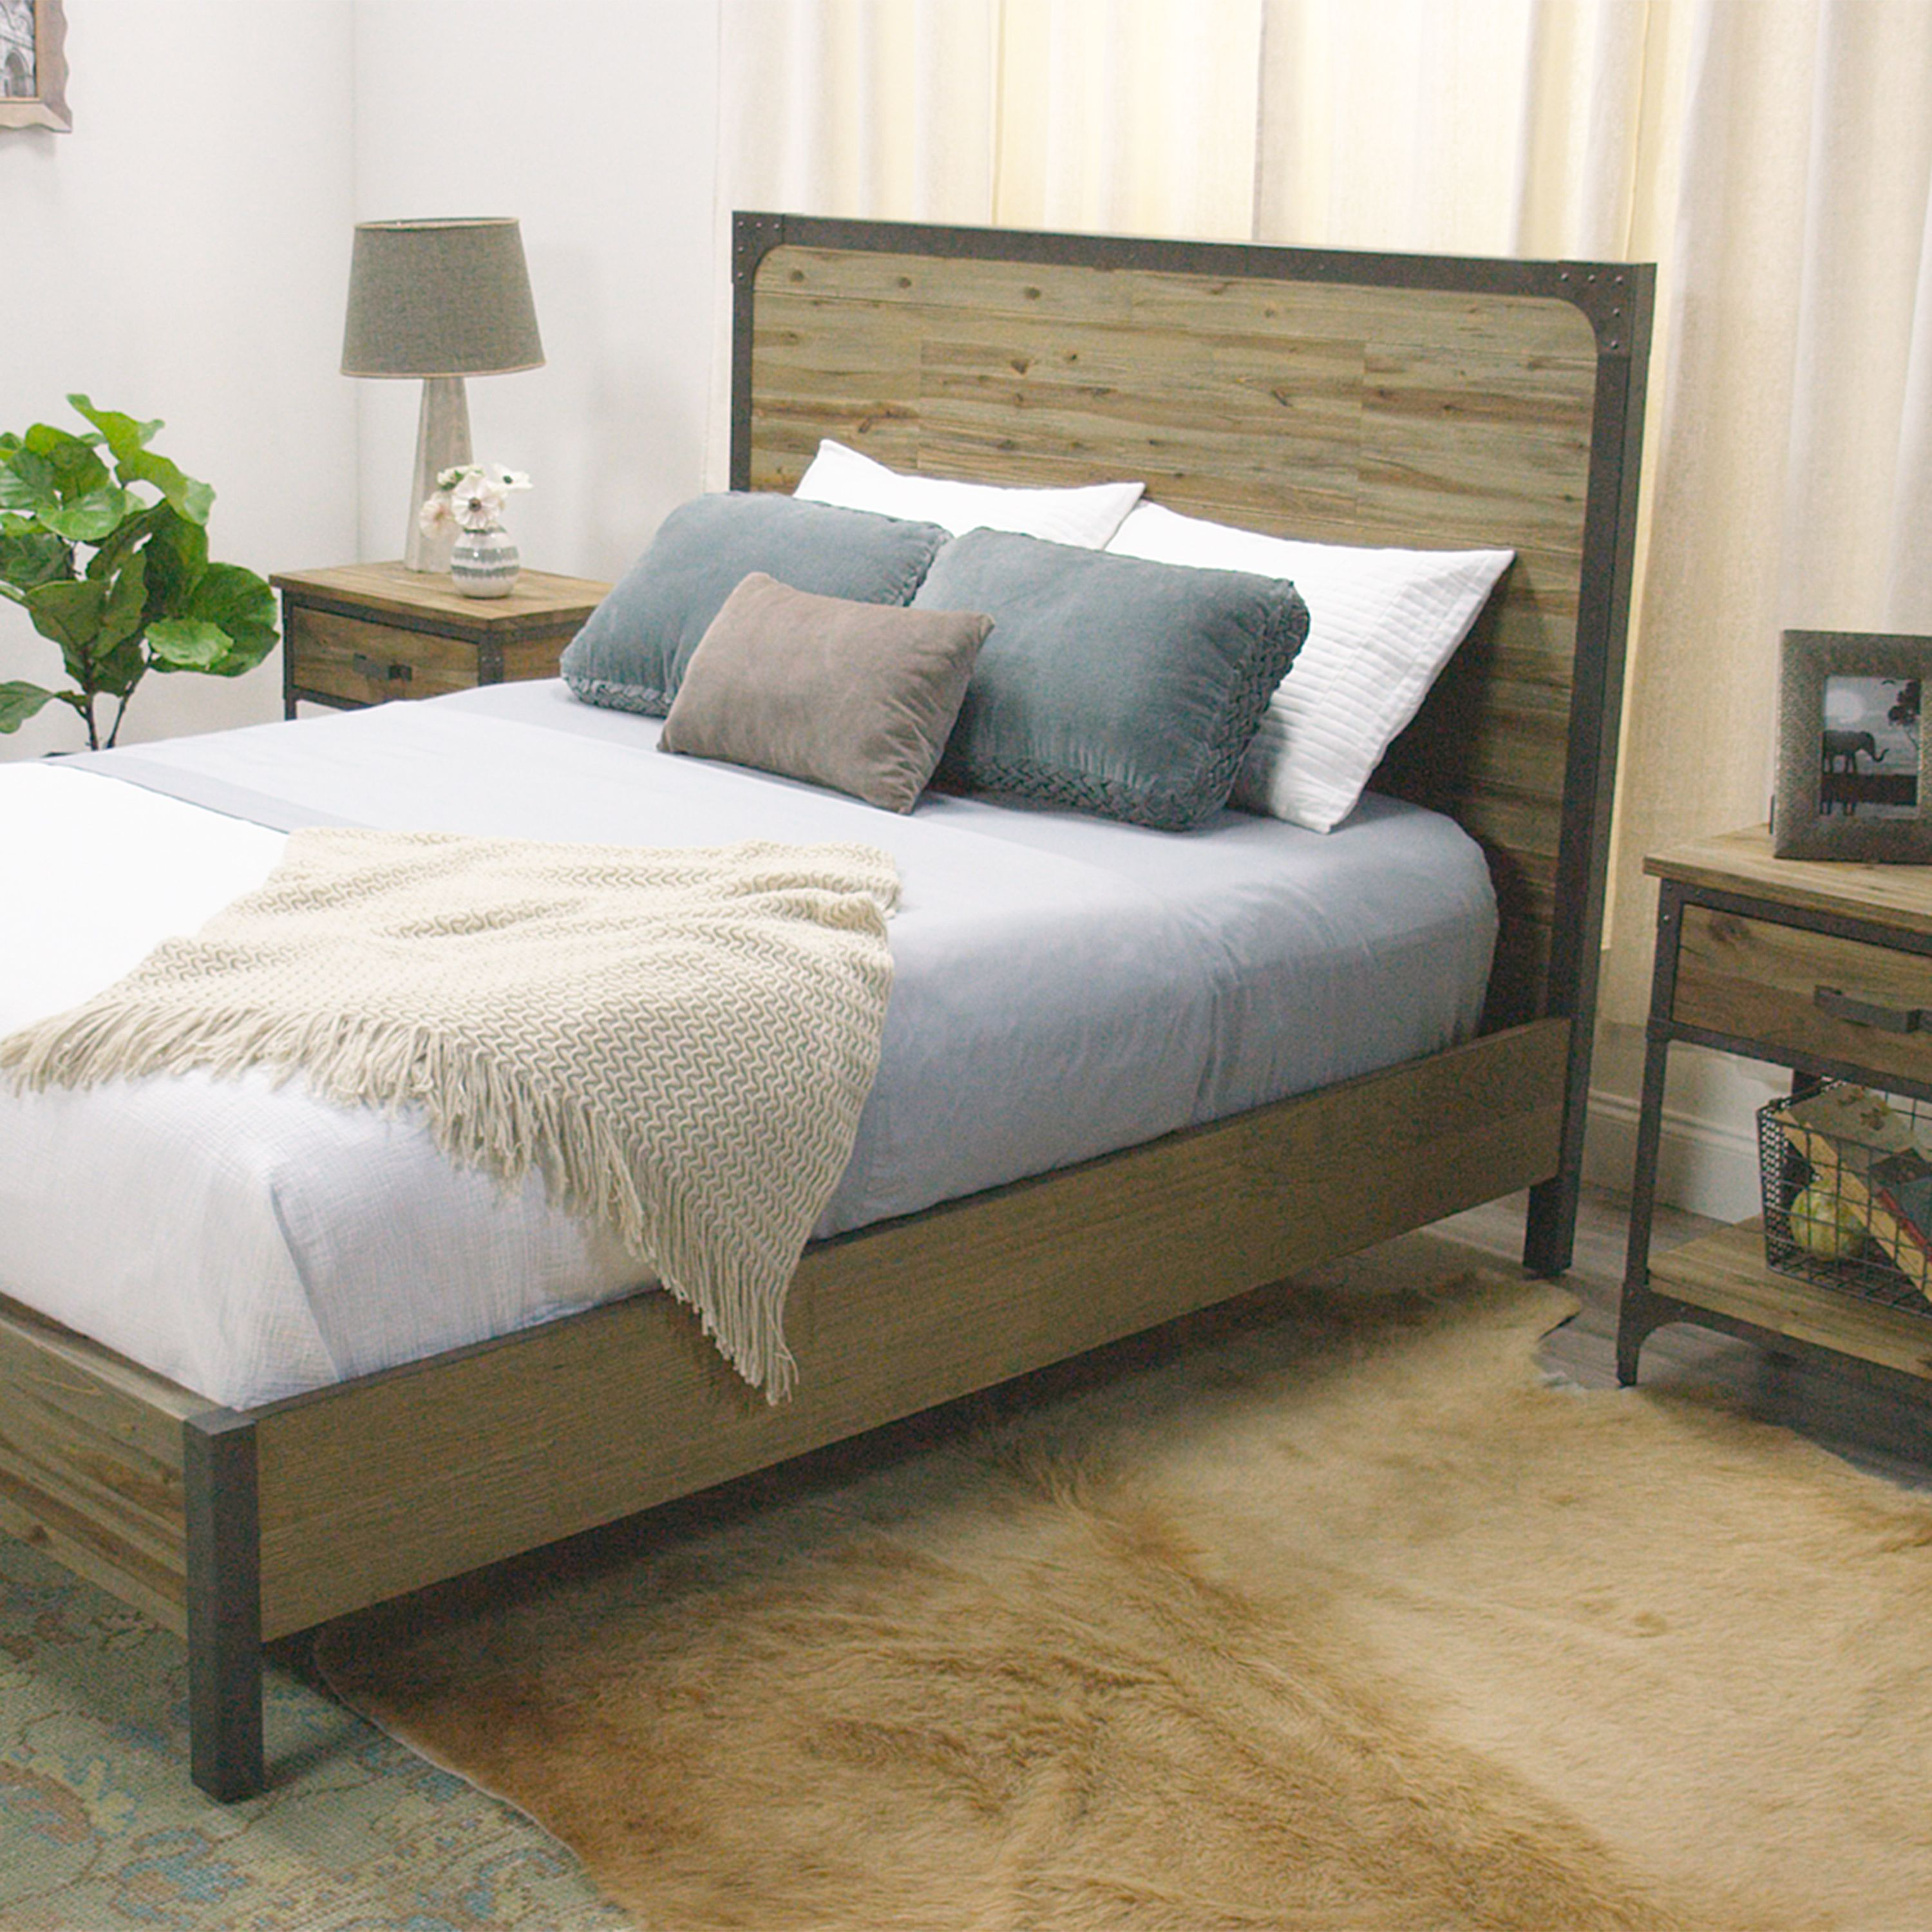 world market bedroom furniture. Combining rustic wood construction with metal accents  our bed is an industrial inspired bedroom Wood and Metal Aiden Bed Rustic Nightstands